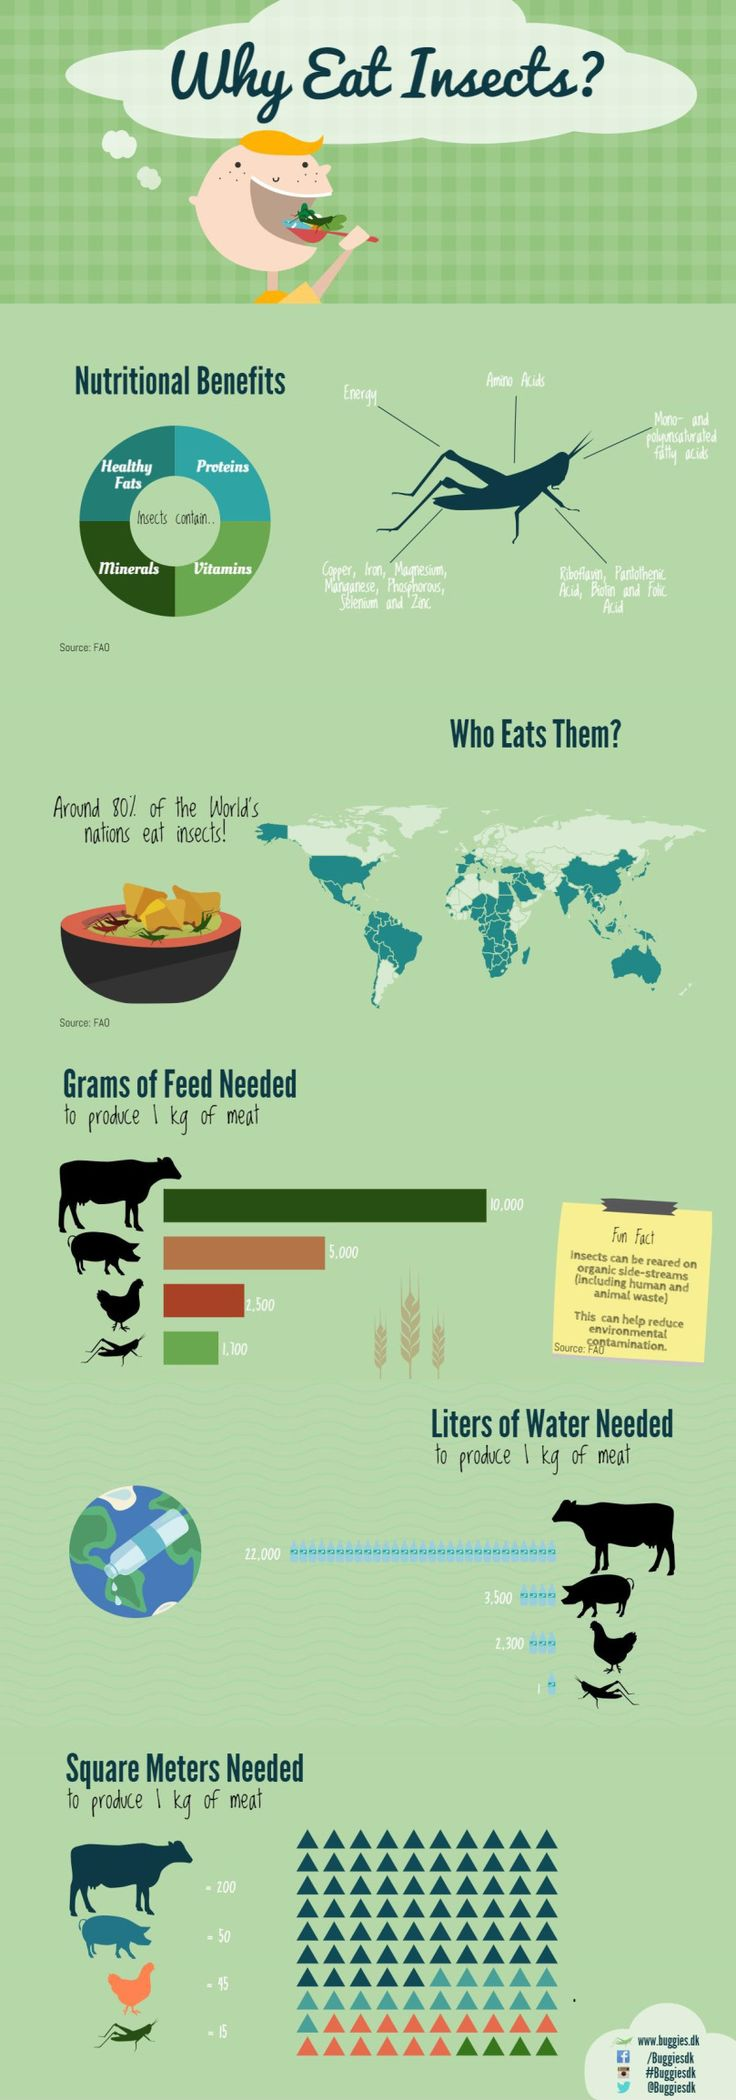 Buggies Infographic - Why eat insects